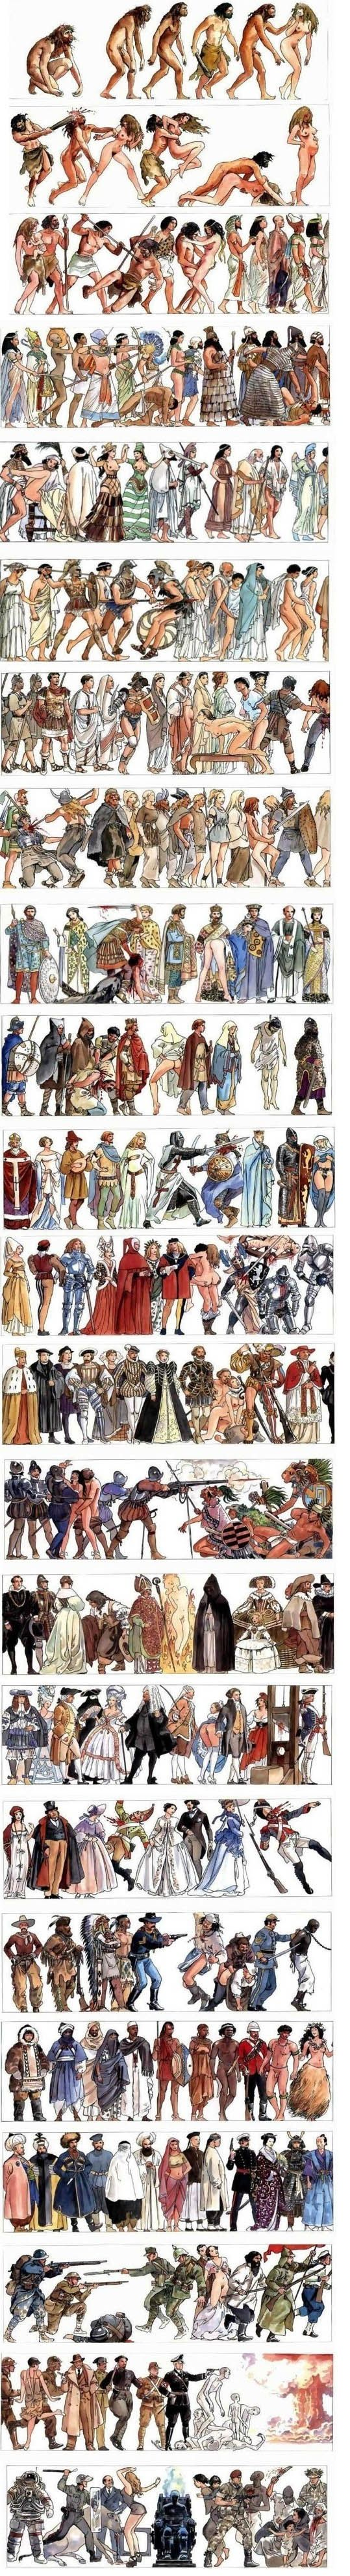 """Milo Manara's """"History of Humankind"""".--- This is so grim. Since the beginning of time everyone has been killing everyone else and the women are just getting fucked."""